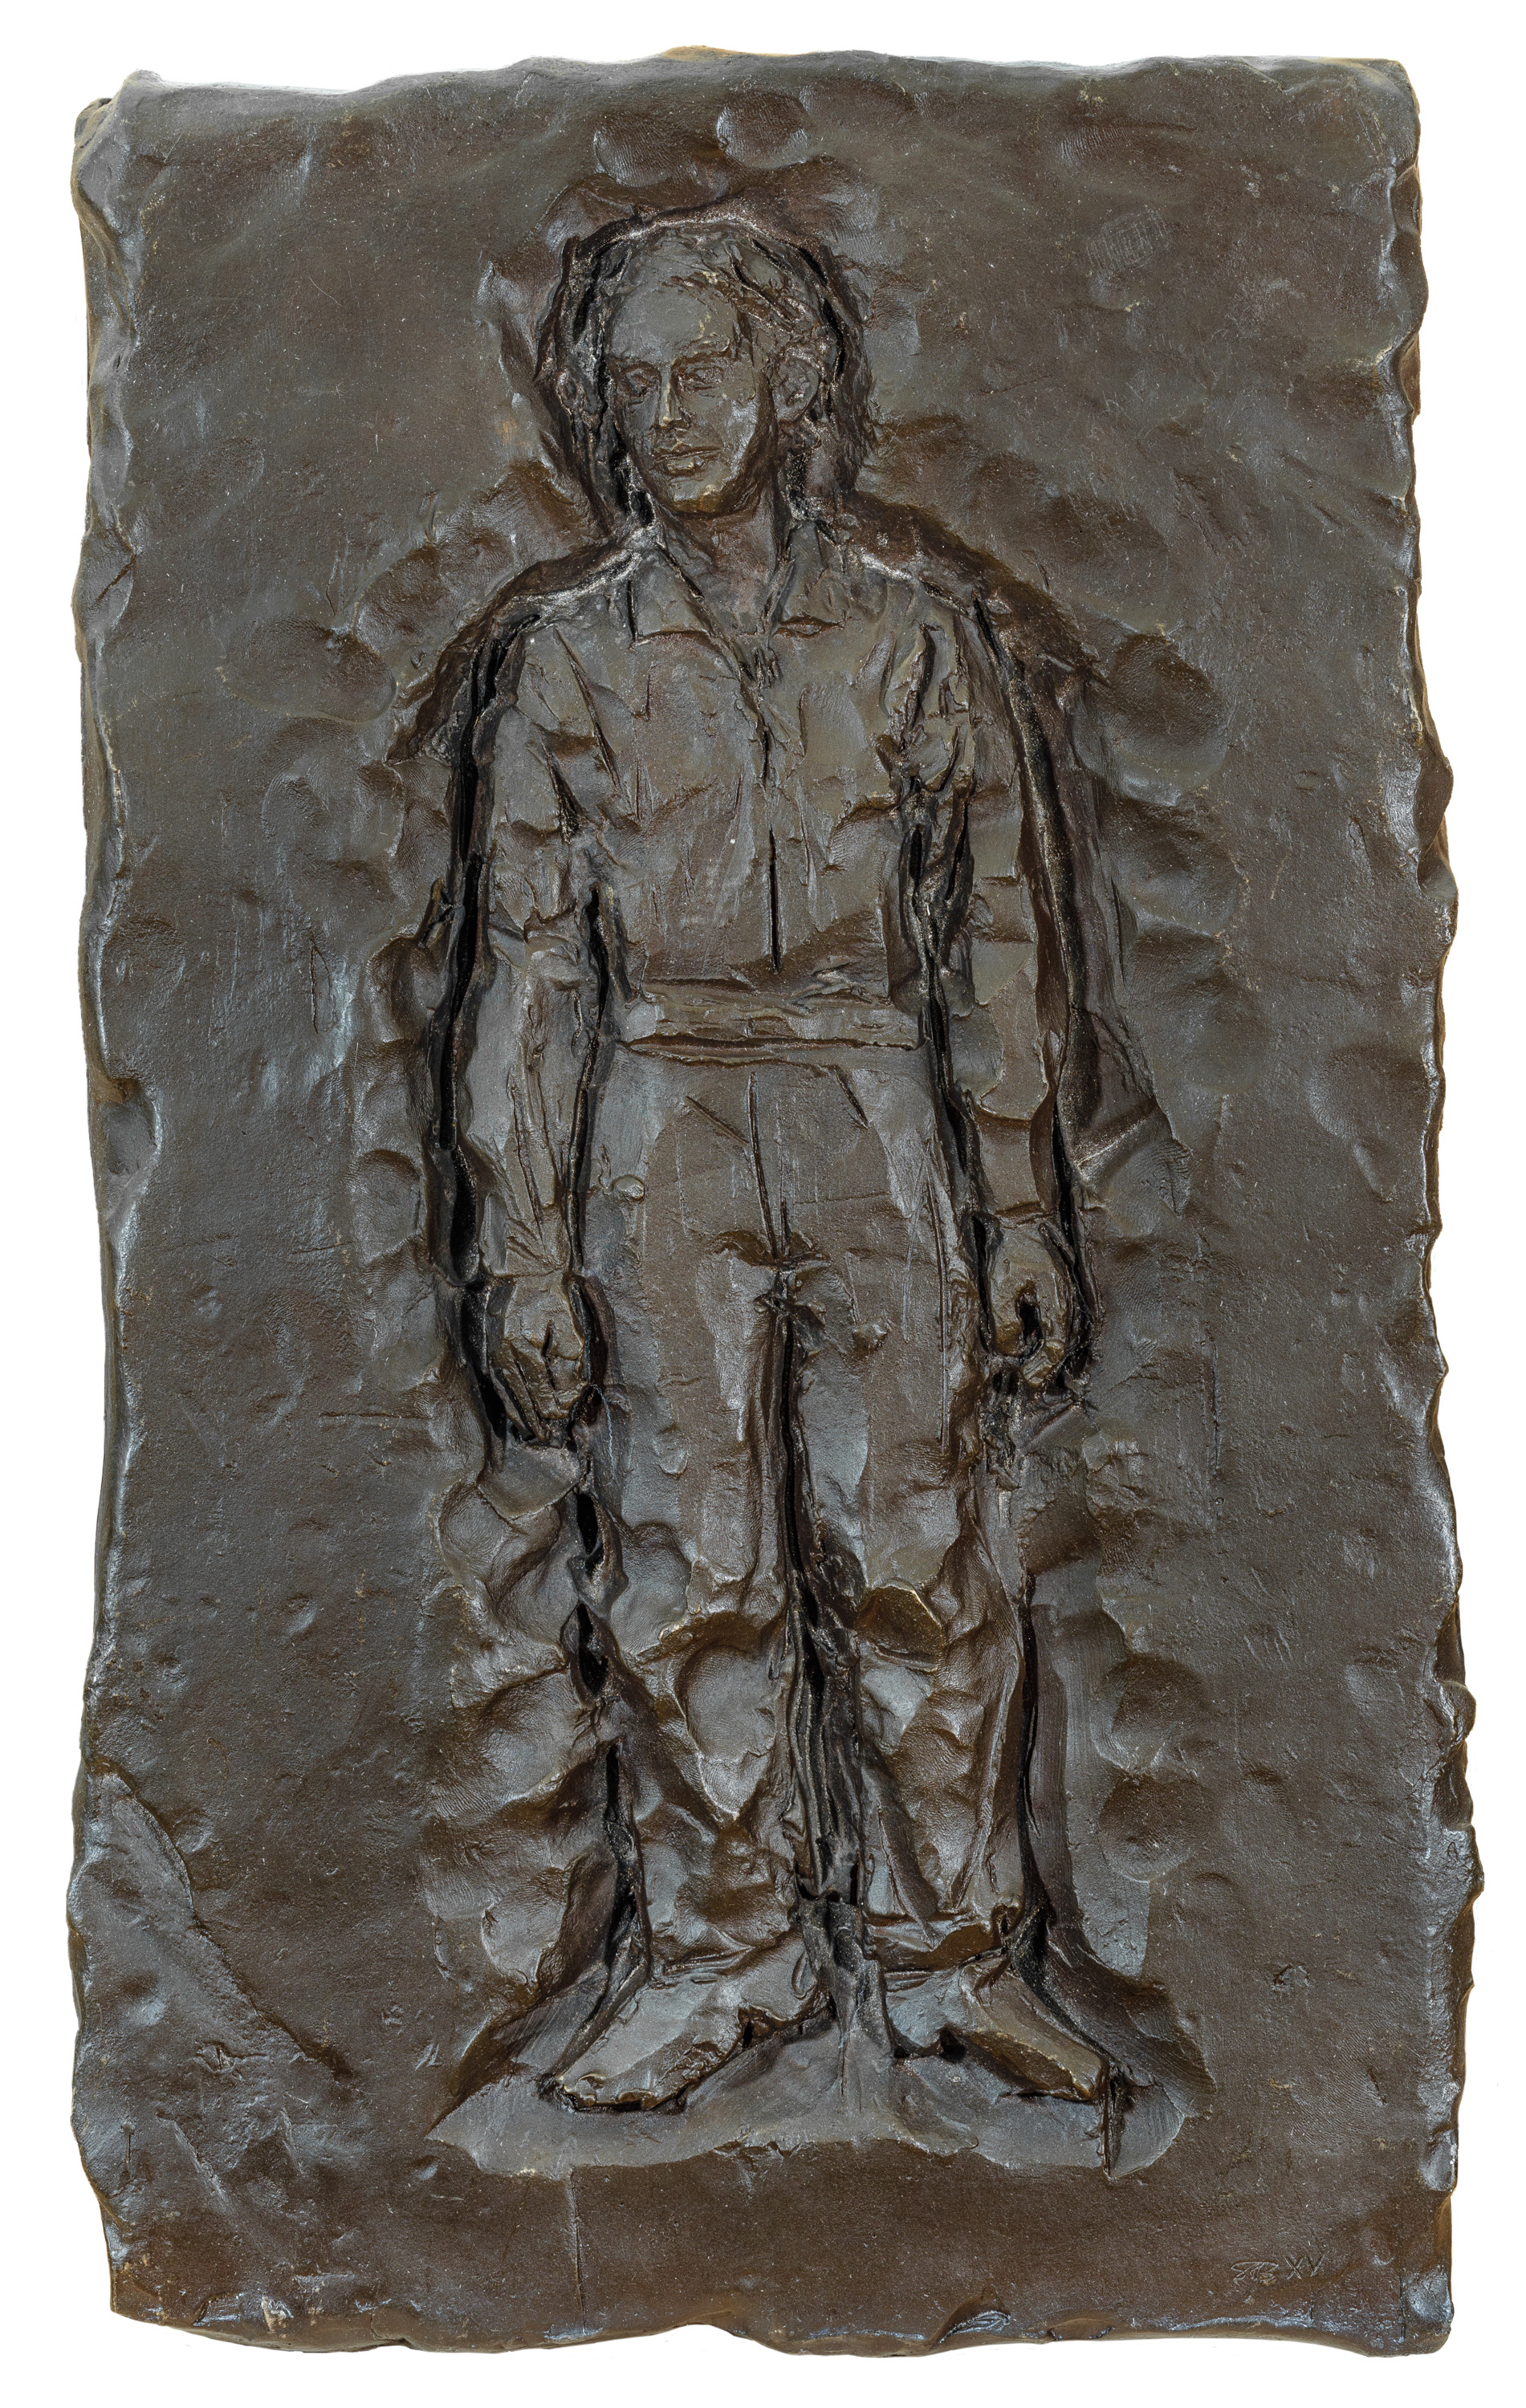 Stephan Balkenhol, Relief Mann. Schmerz-Transformationen